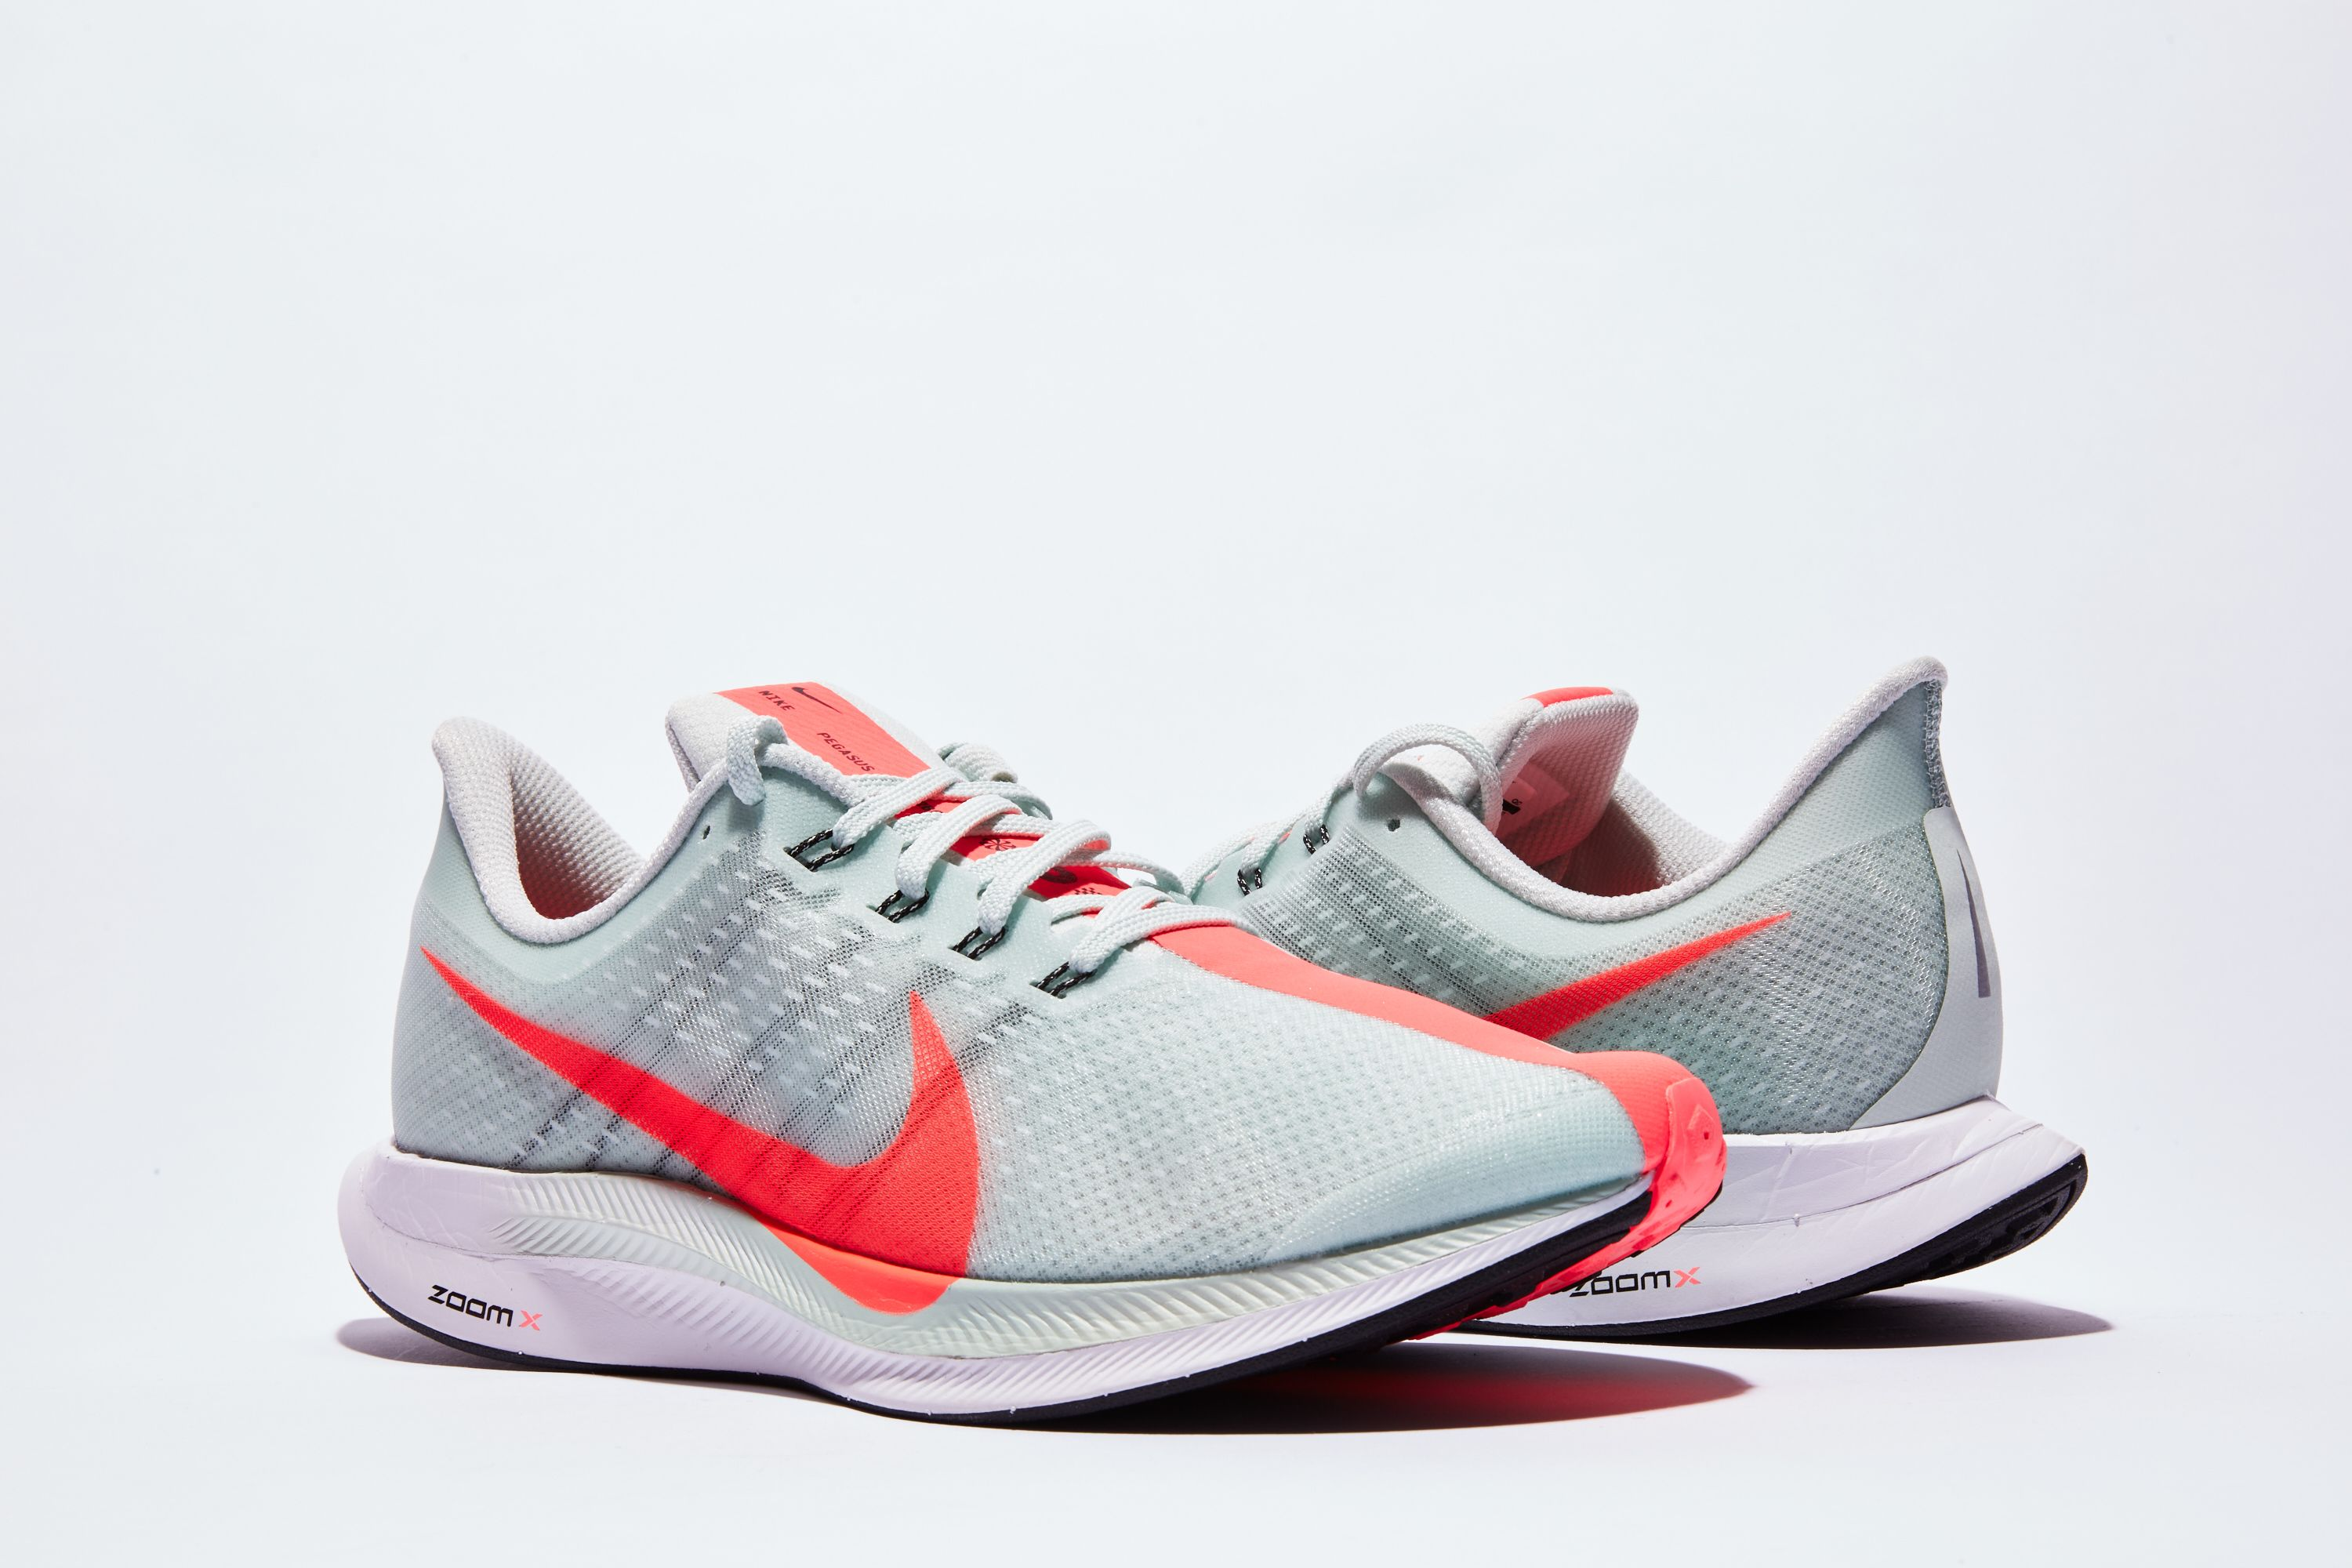 b9e798d4f Nike Zoom Pegasus 35 Turbo - Running Shoes for Speed